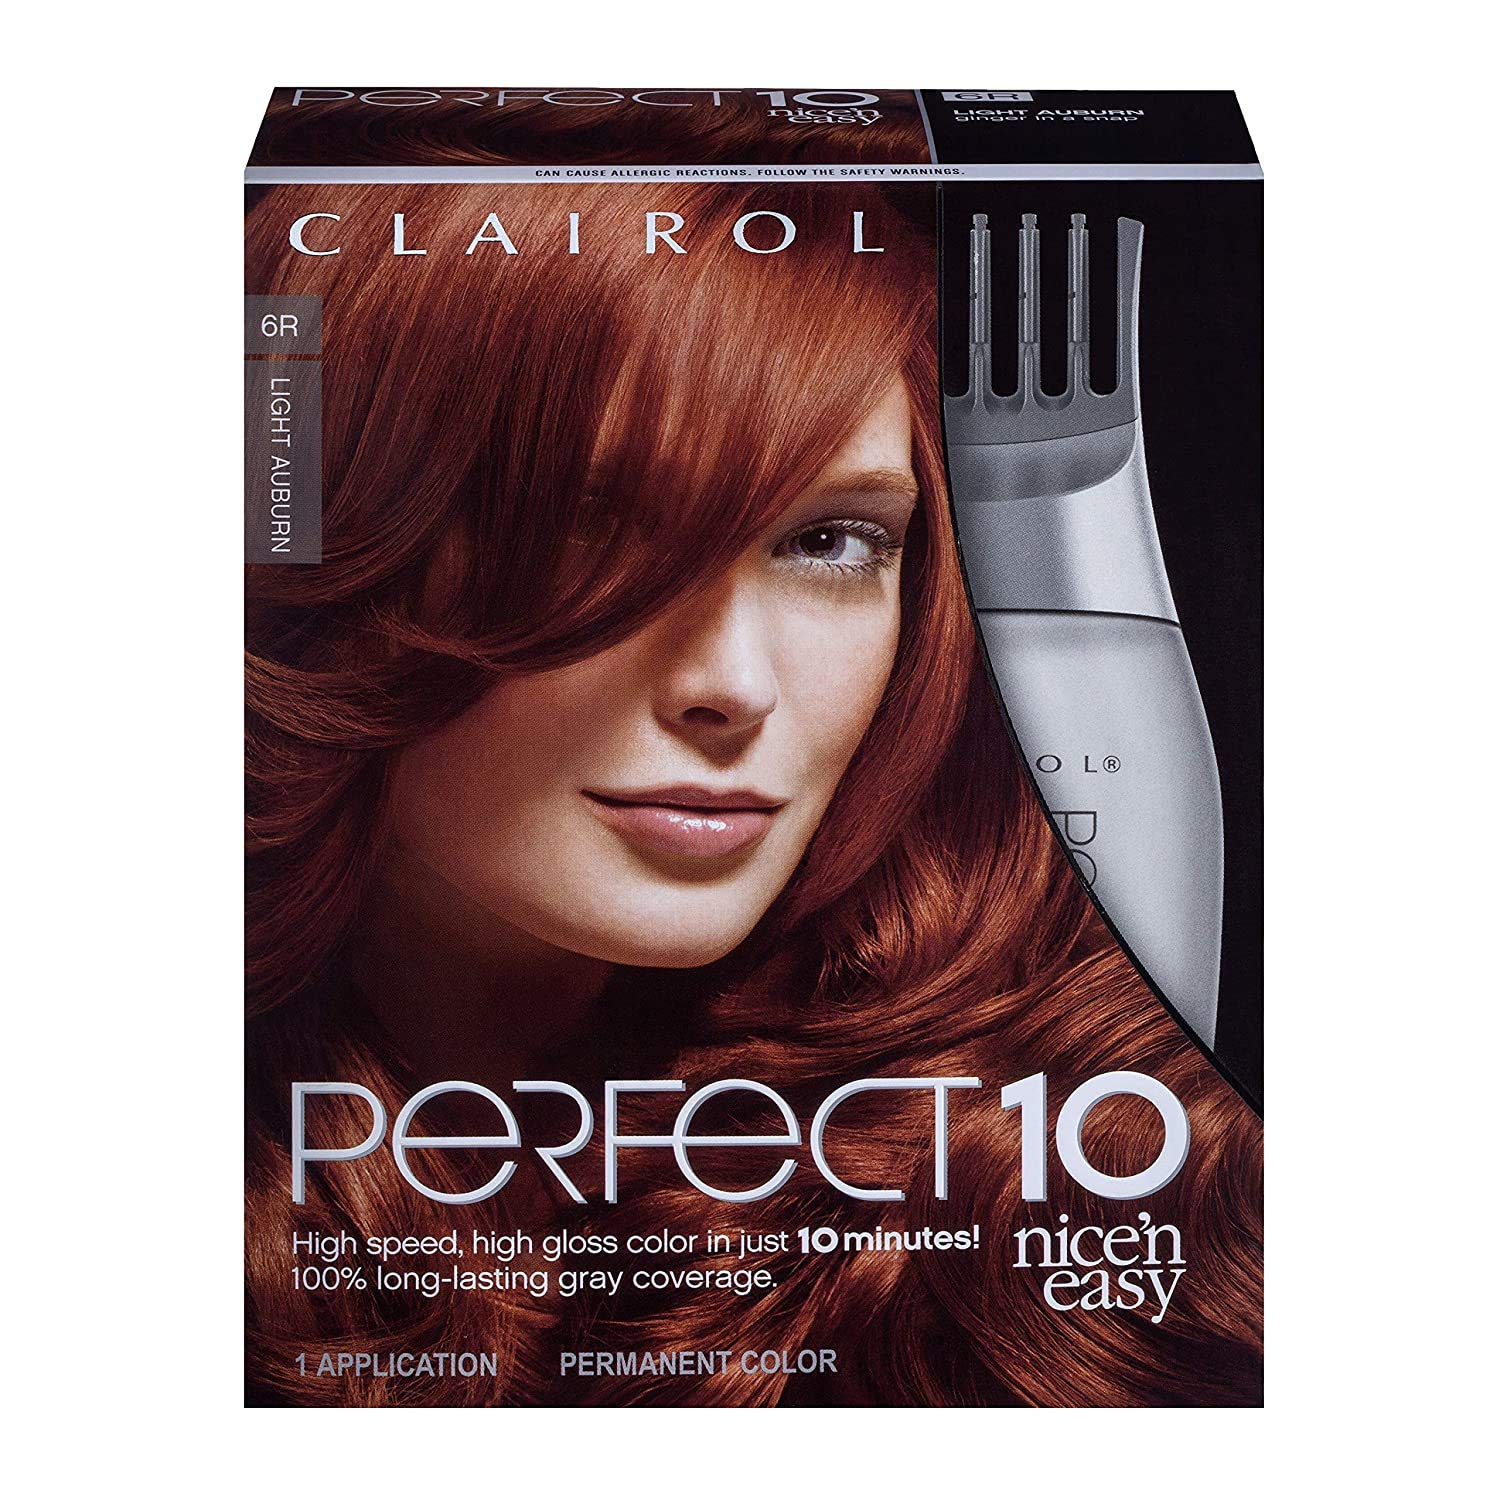 Clairol Nice'n Easy Perfect 10 Permanent Light 6R 2021 spring and summer new Aubu Dye Hair Max 50% OFF